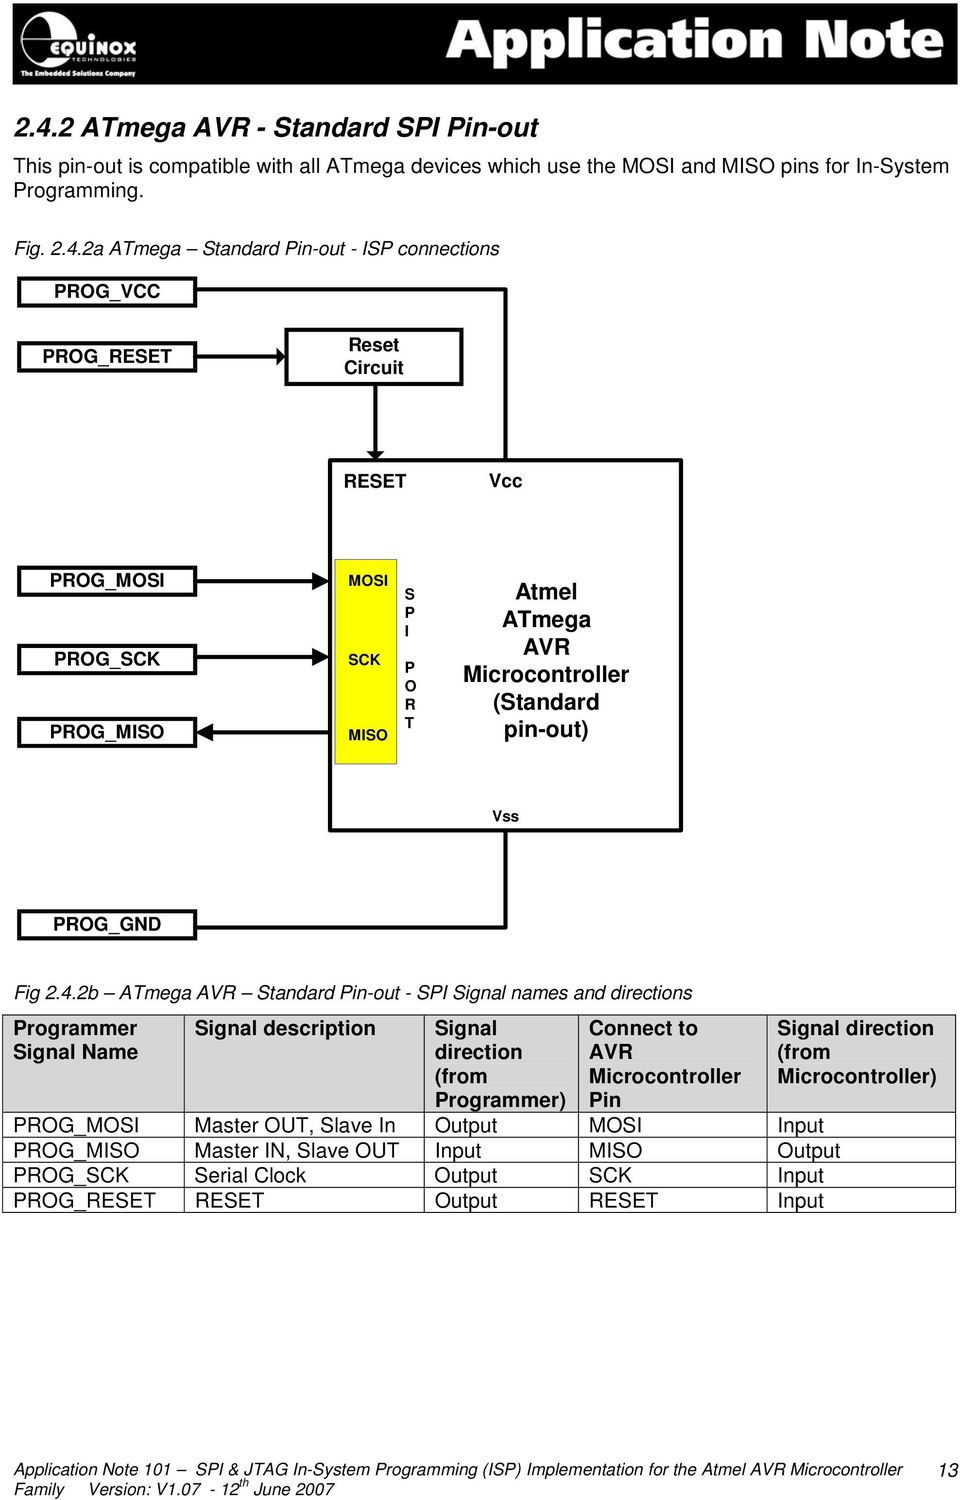 Spi And Jtag In System Programming Isp Guidelines For The Atmel Avr Programmer Sytem 2b Atmega Standard Pin Out Signal Names Directions Name